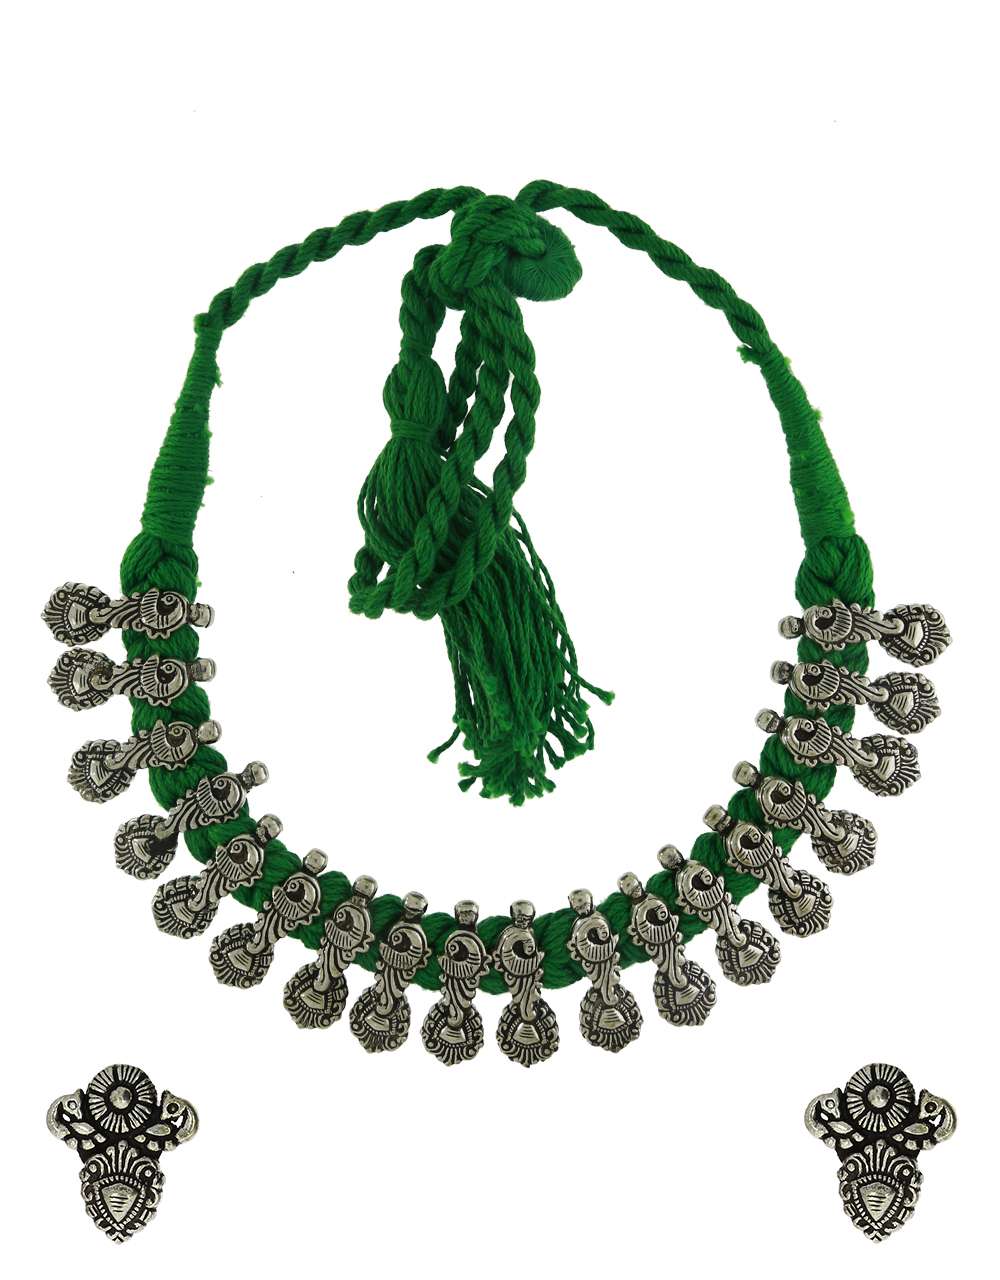 Parrot Green Colour Traditional Choker Necklace For Women